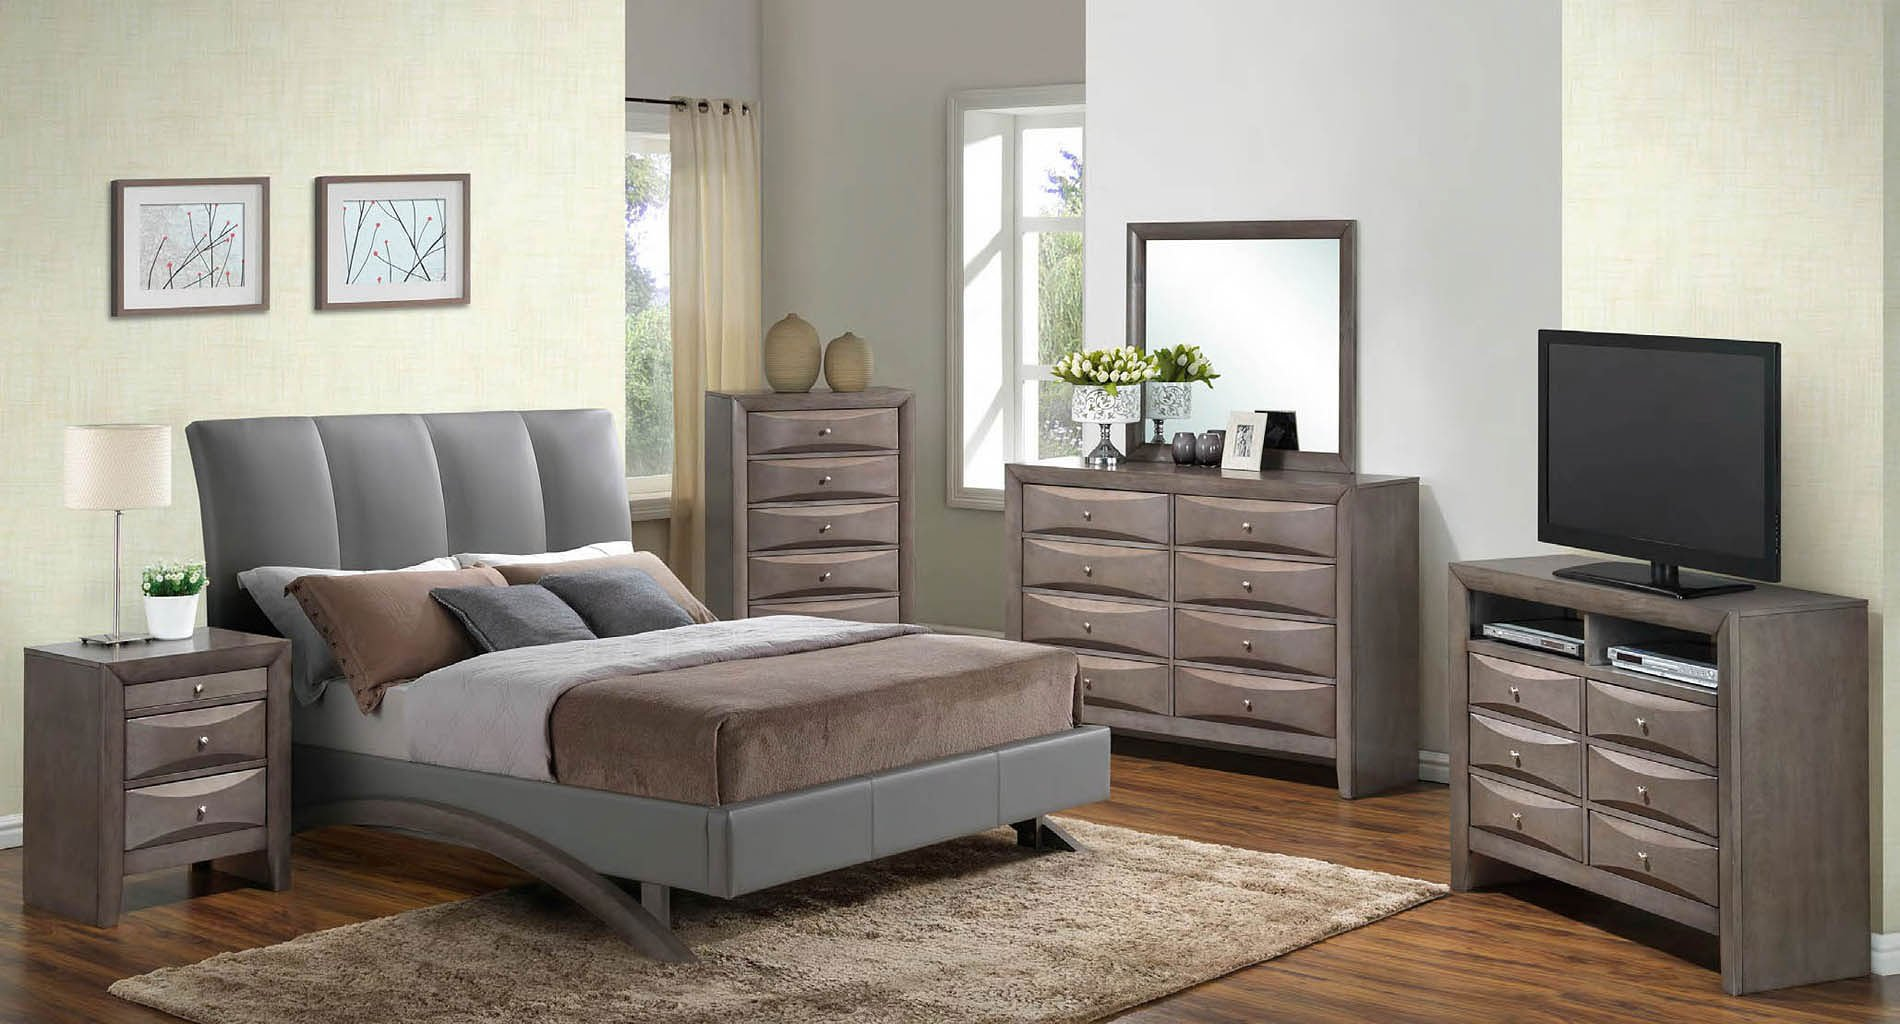 G2546 upholstered bedroom set bedroom sets bedroom furniture bedroom for College bedroom furniture sets